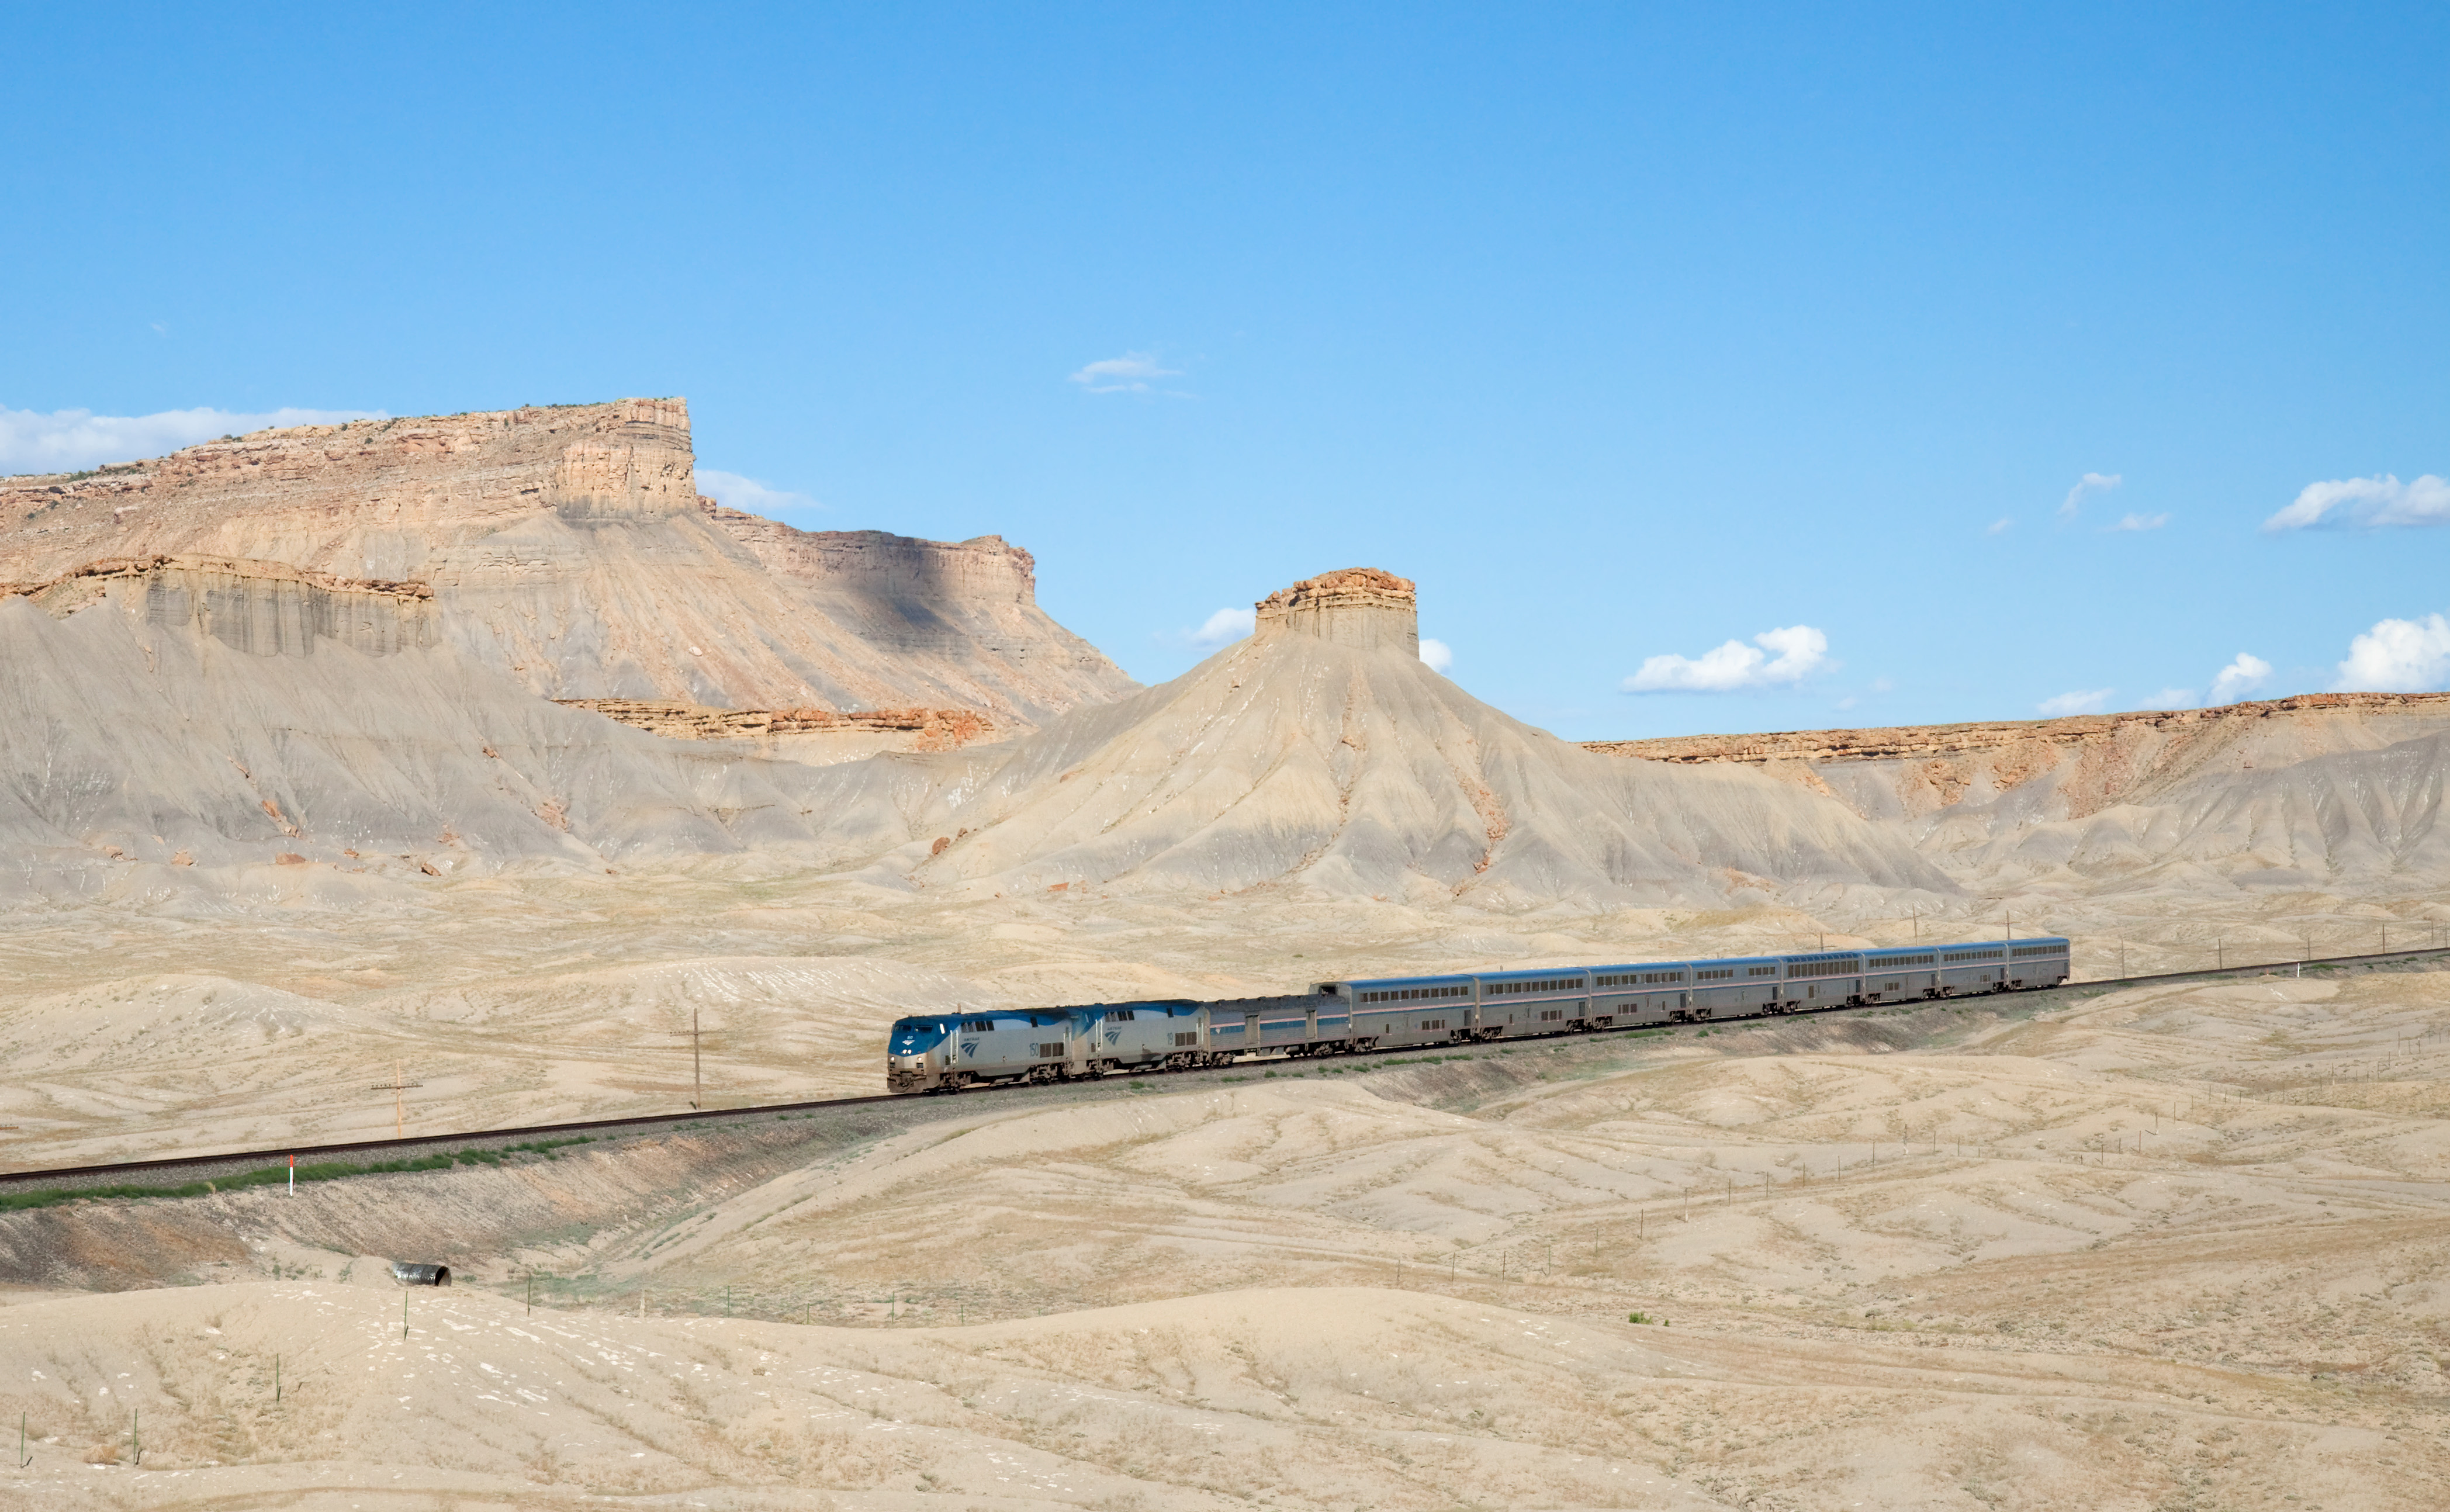 https://upload.wikimedia.org/wikipedia/commons/f/f6/Amtrak_California_Zephyr_Green_River_-_Floy,_Utah.jpg